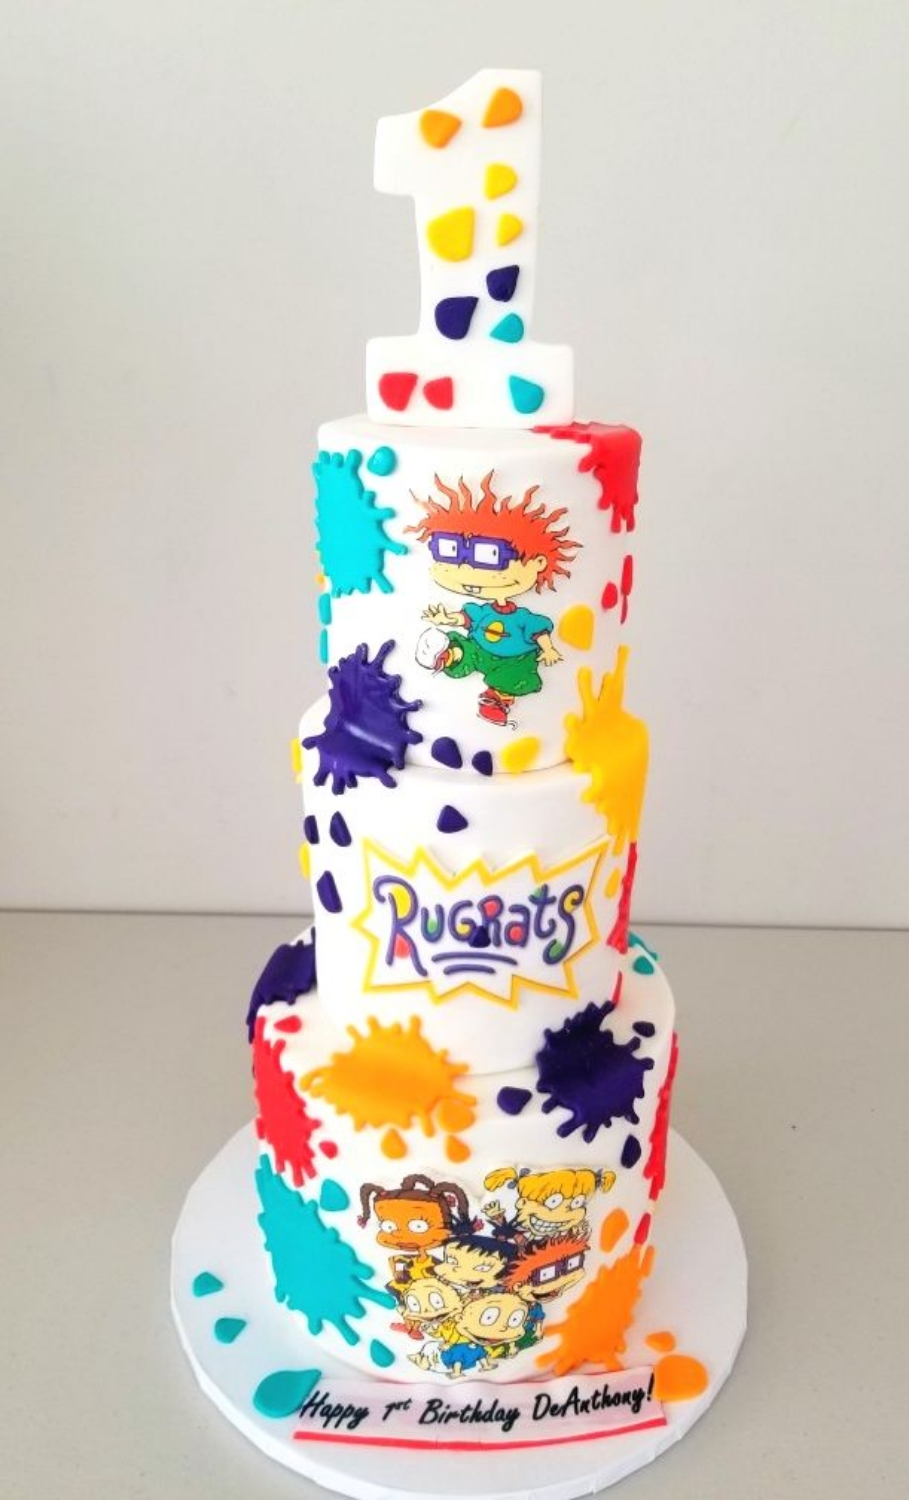 Rugrats Birthday Cake